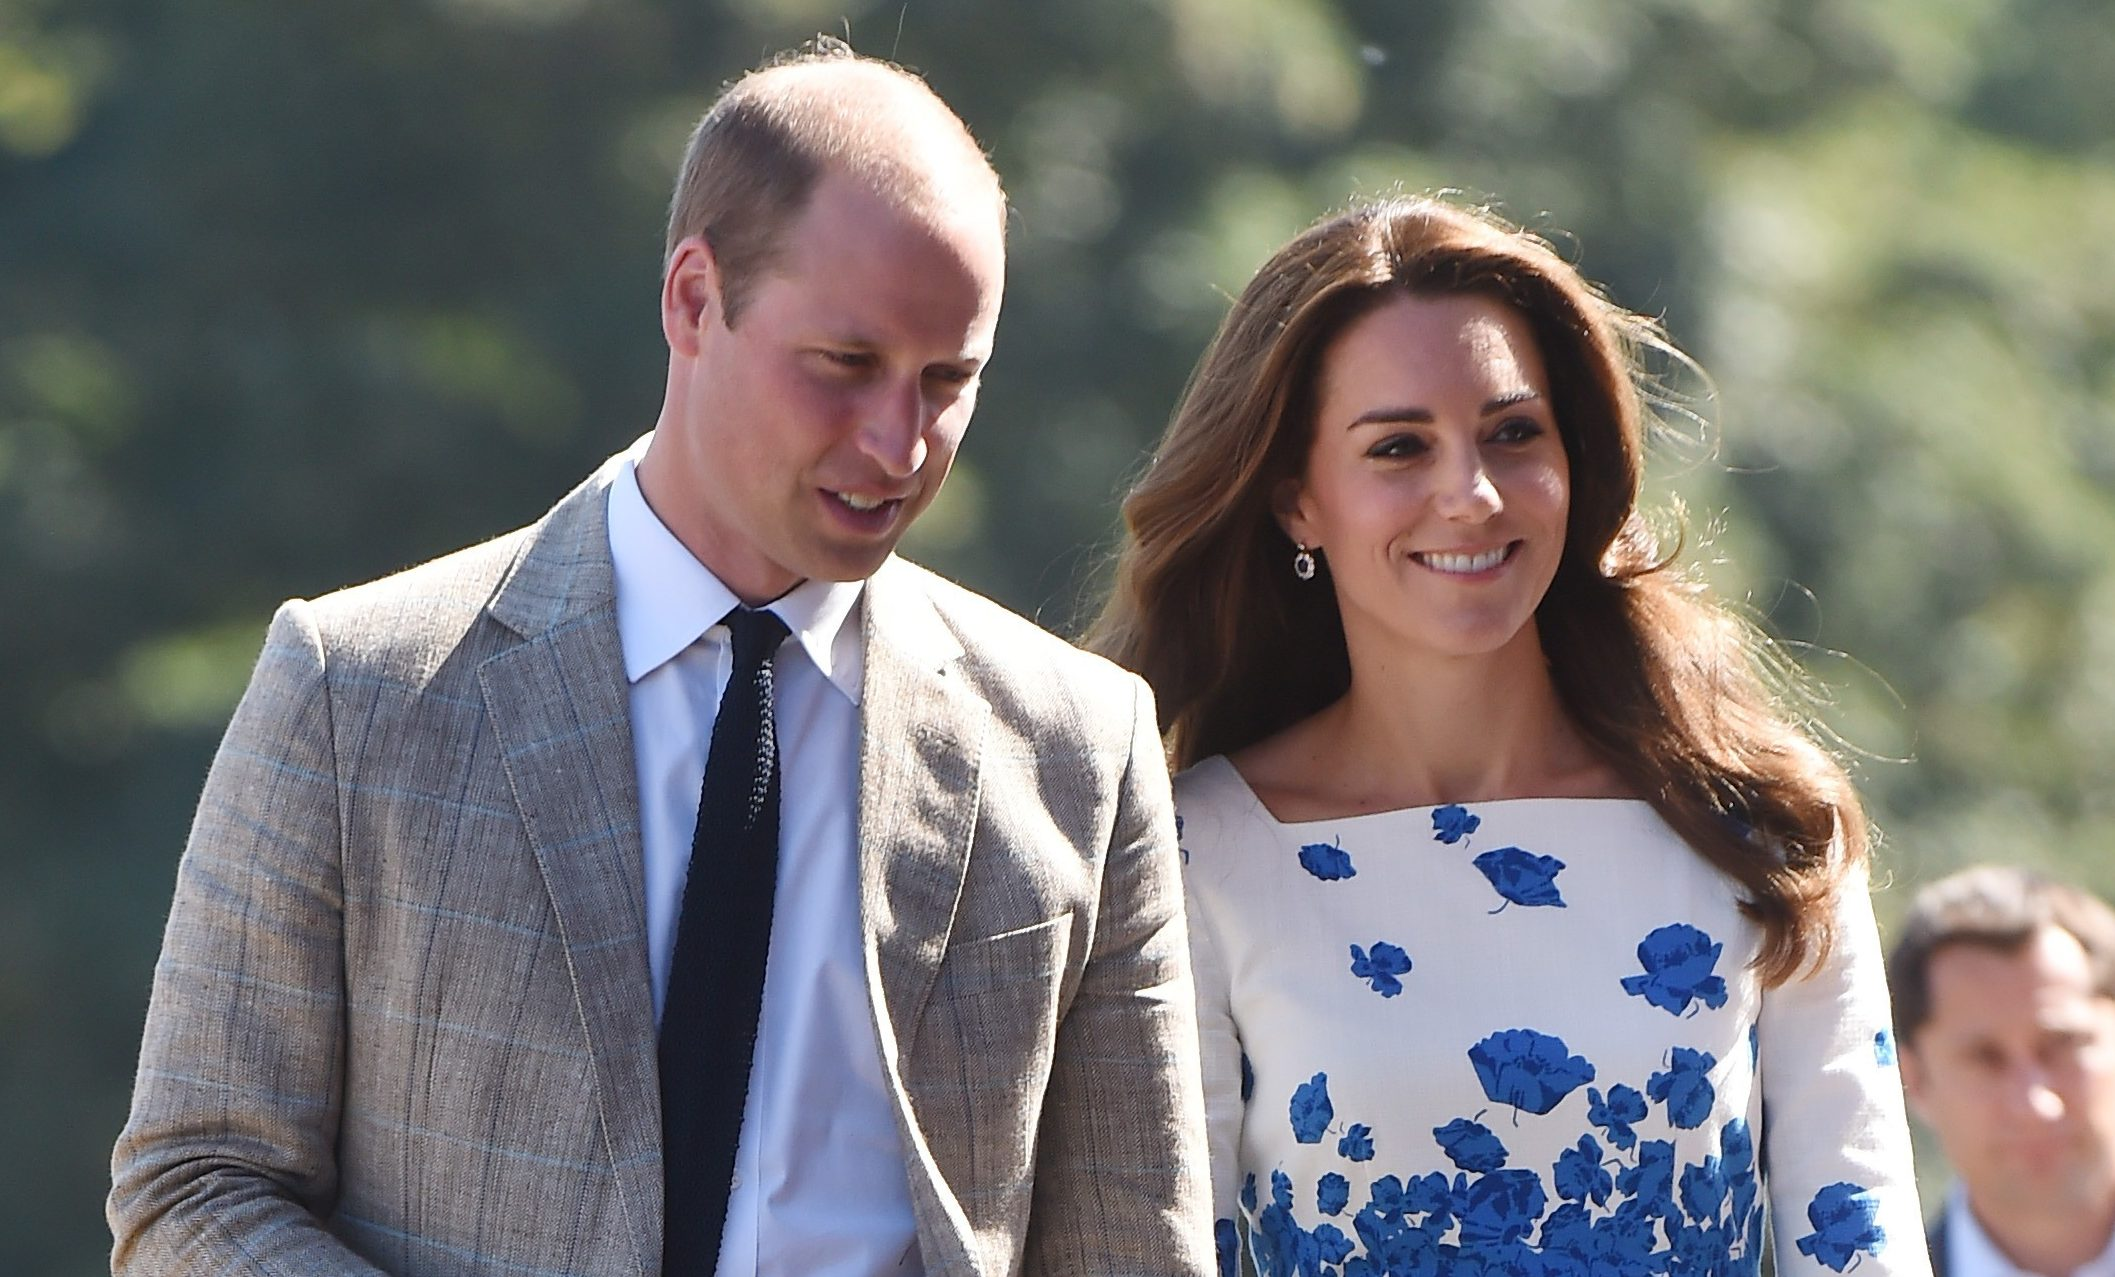 The Duchess of Cambridge gives birth to a baby boy!